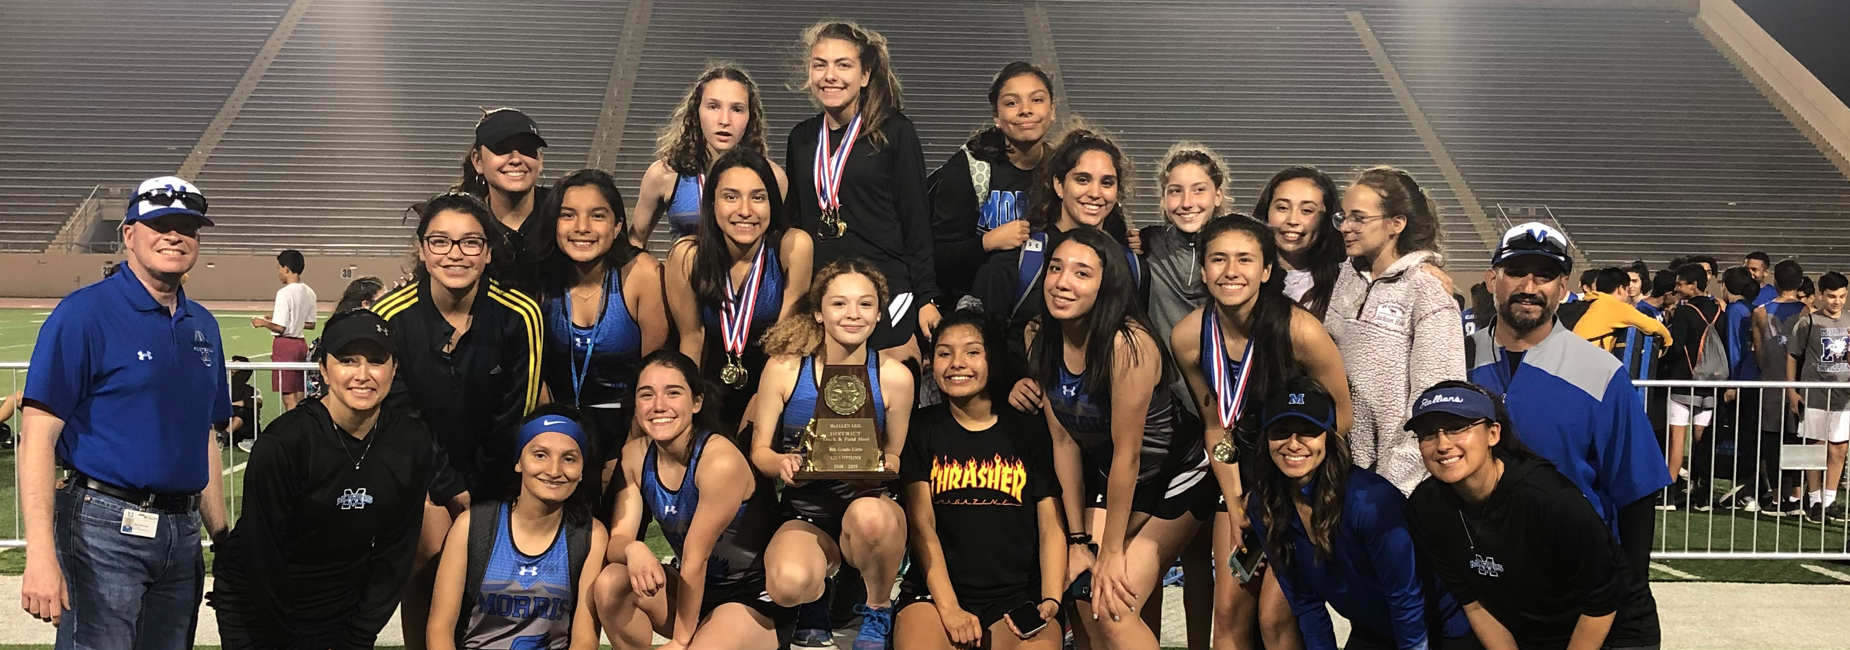 8th Girls Track - District Champions